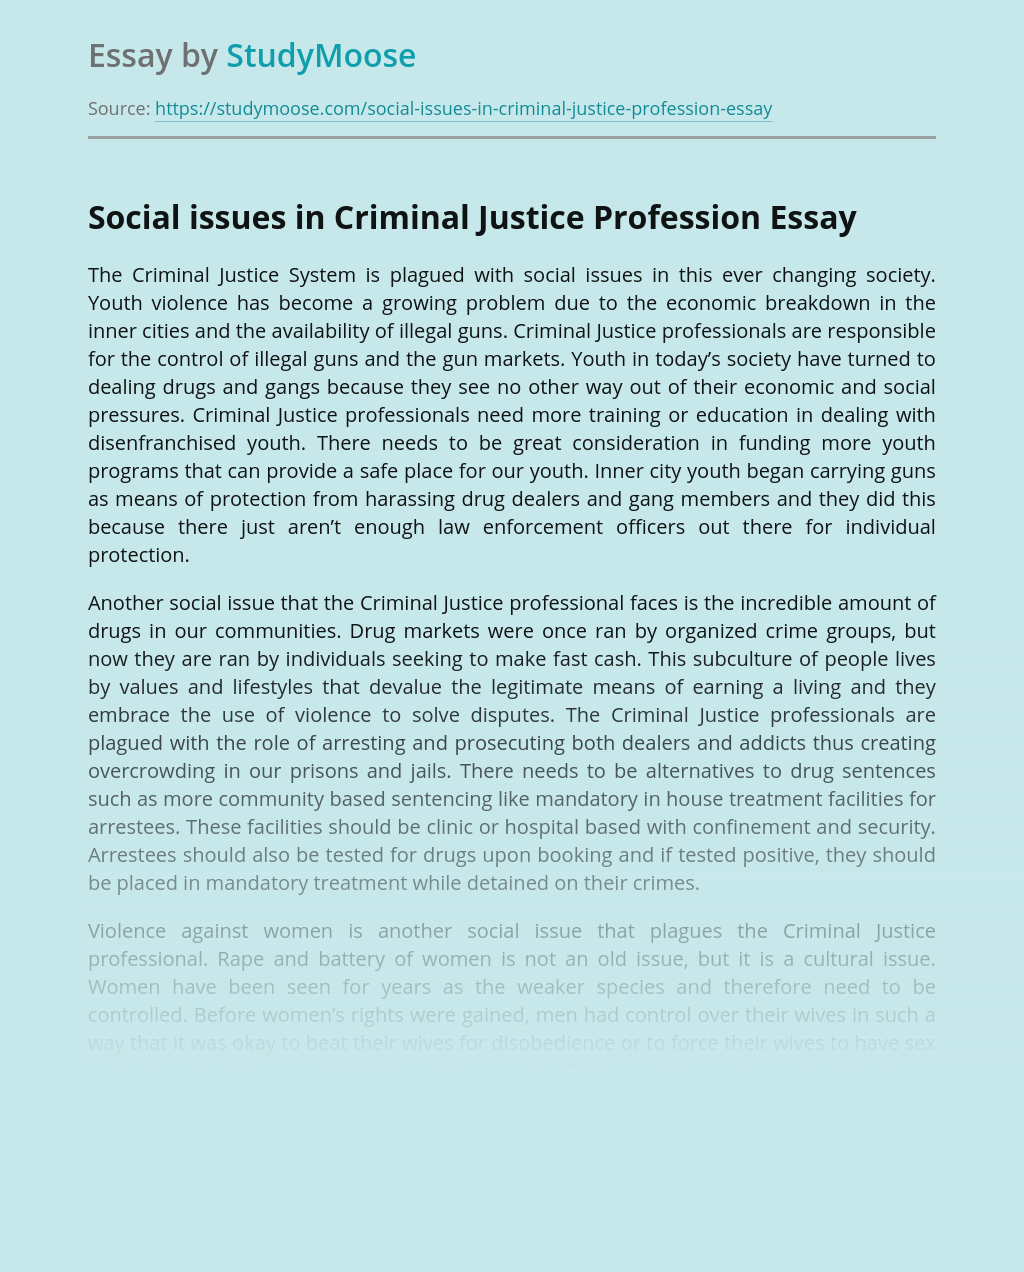 Social issues in Criminal Justice Profession